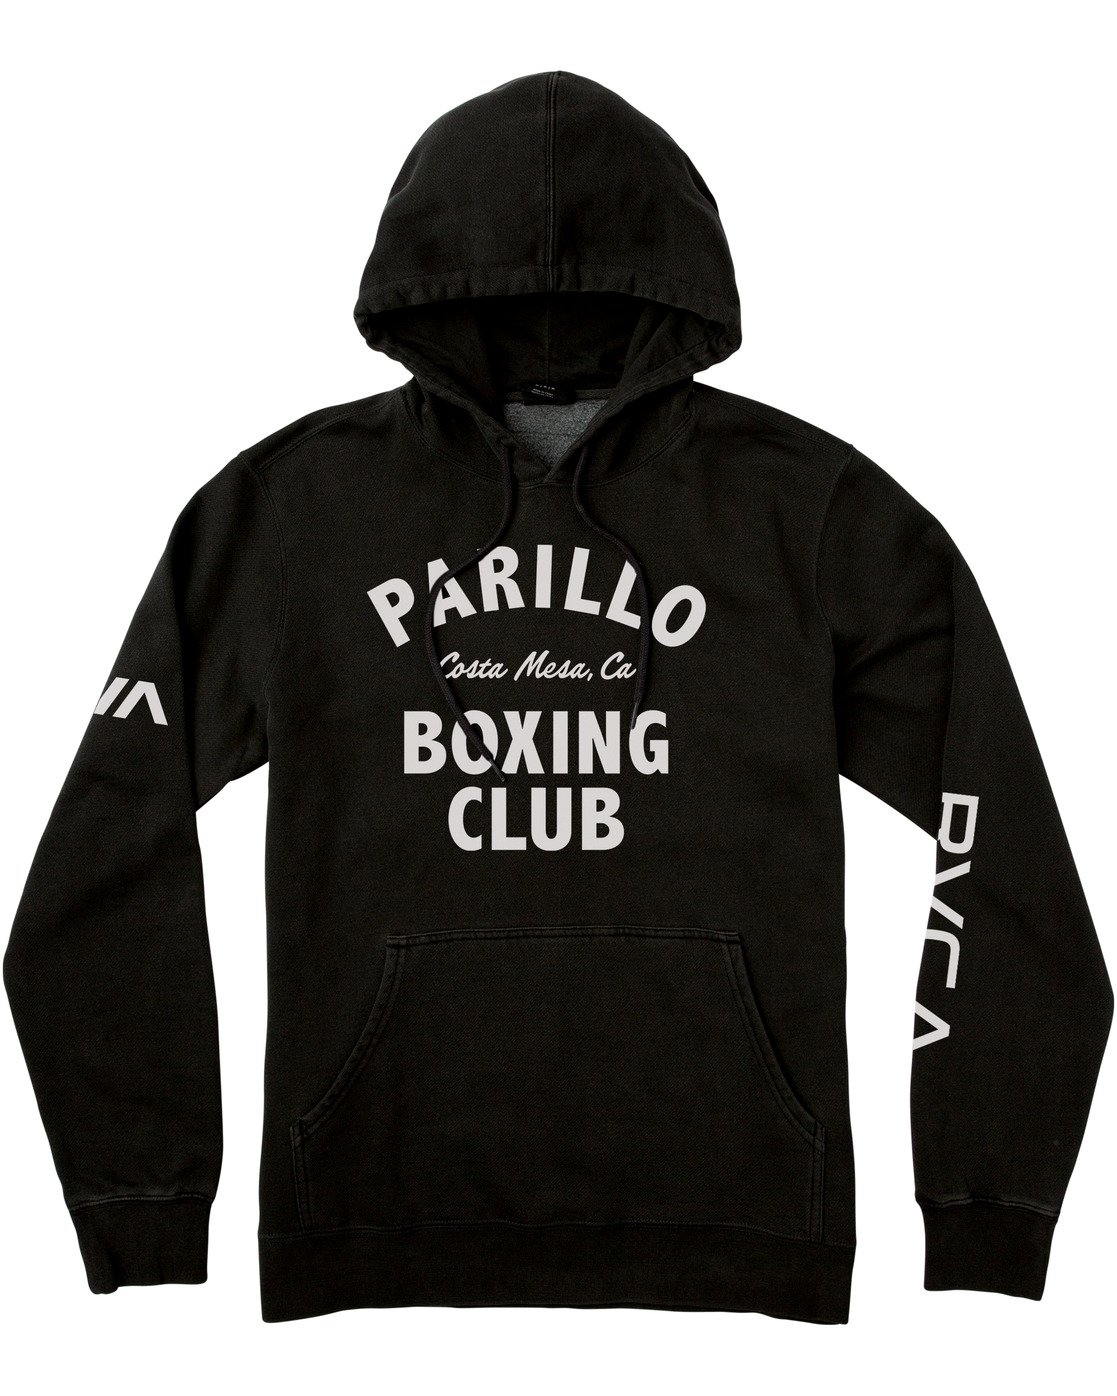 5 PARILLO BOXING CLUB HOODIE Black R317165 RVCA